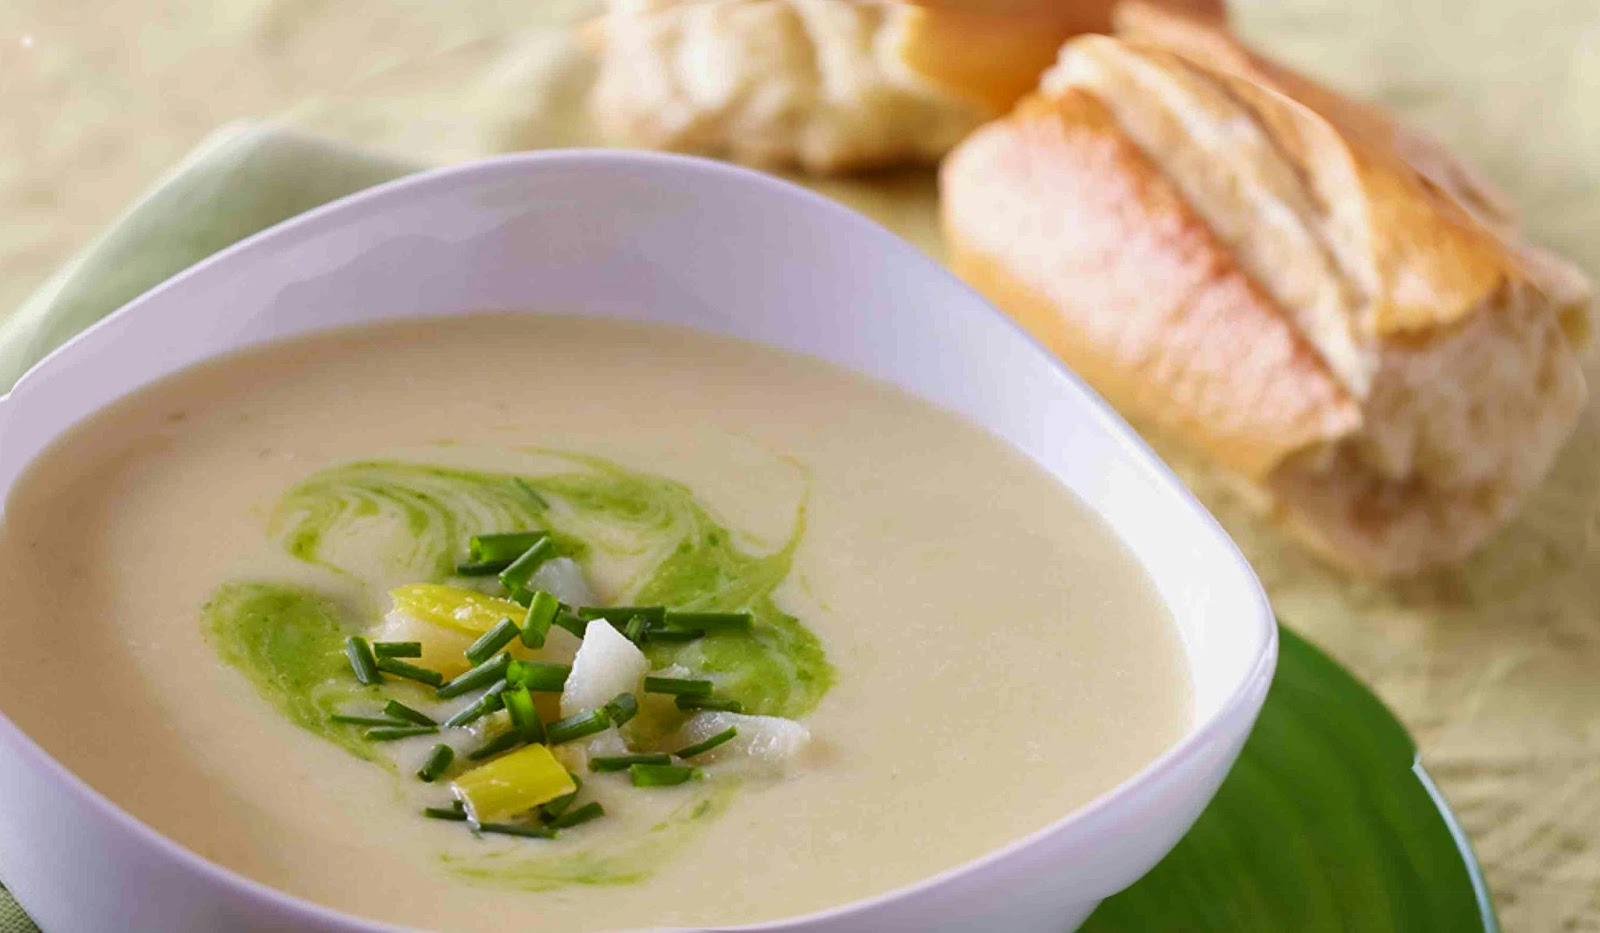 healthy-vegan-leek-soup-modern-recipe-game-of-thrones-food-recipes